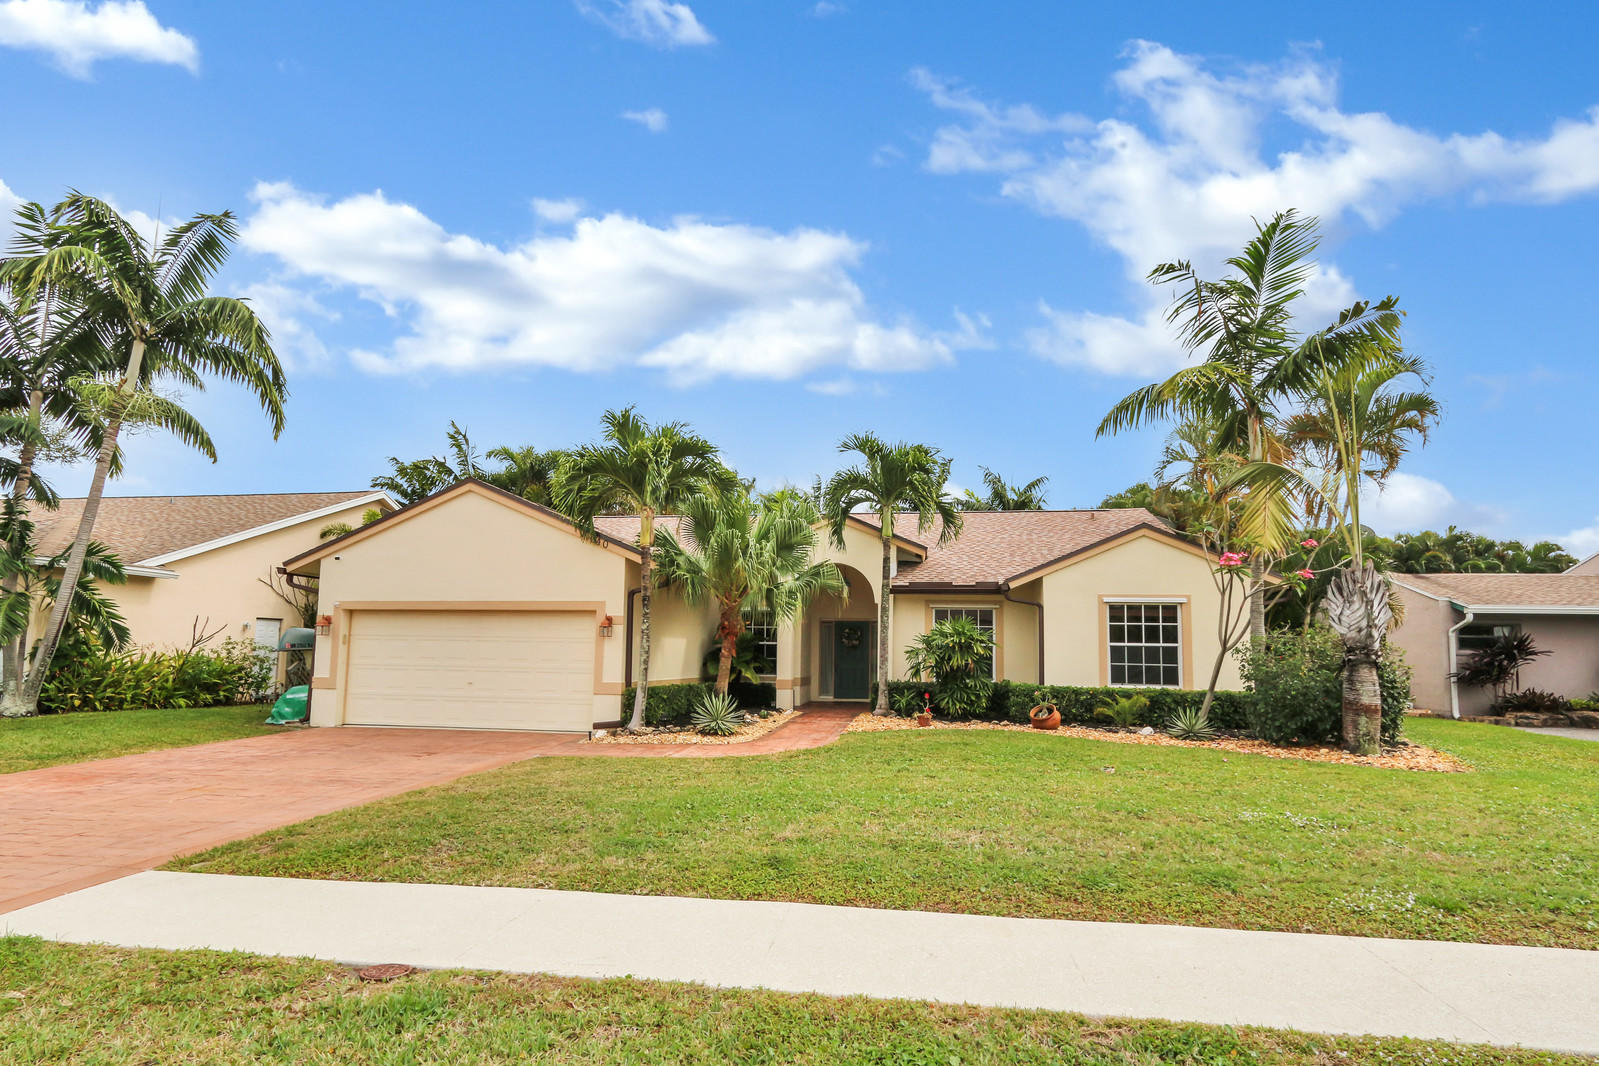 640 NE 15th Place, Boynton Beach, Florida